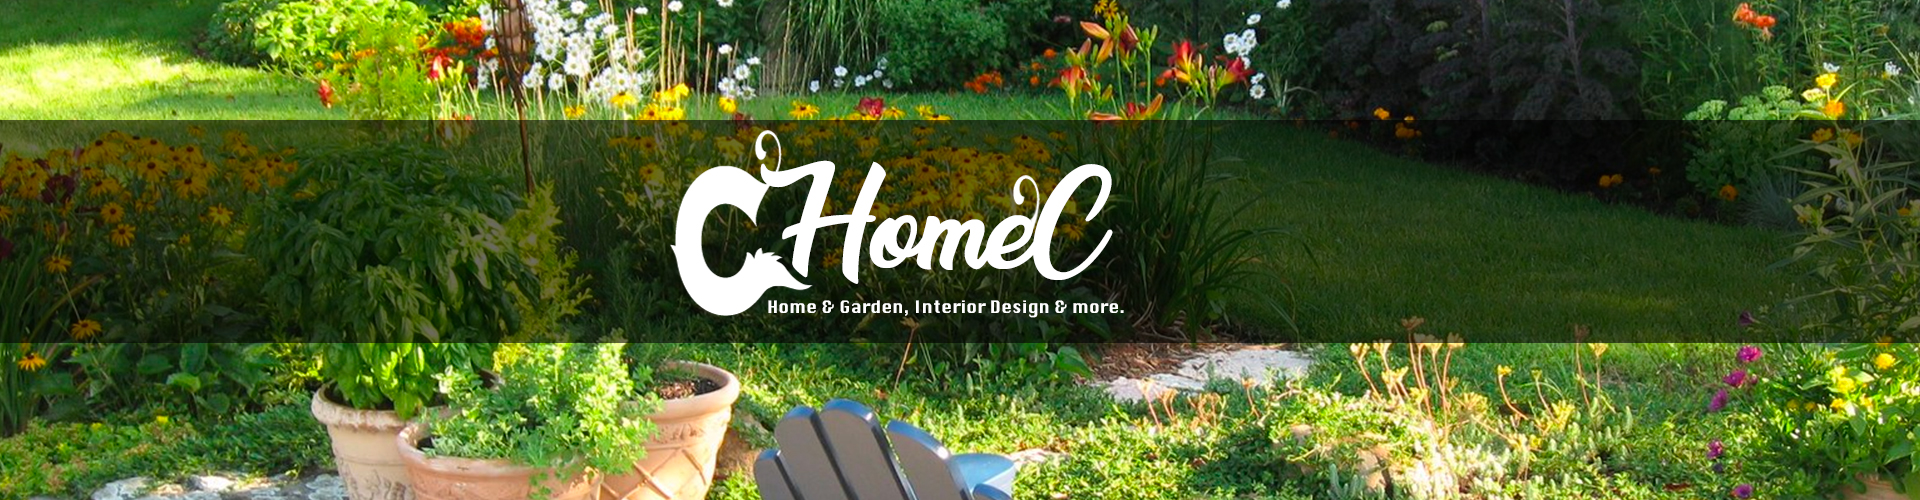 Category: Home & Garden